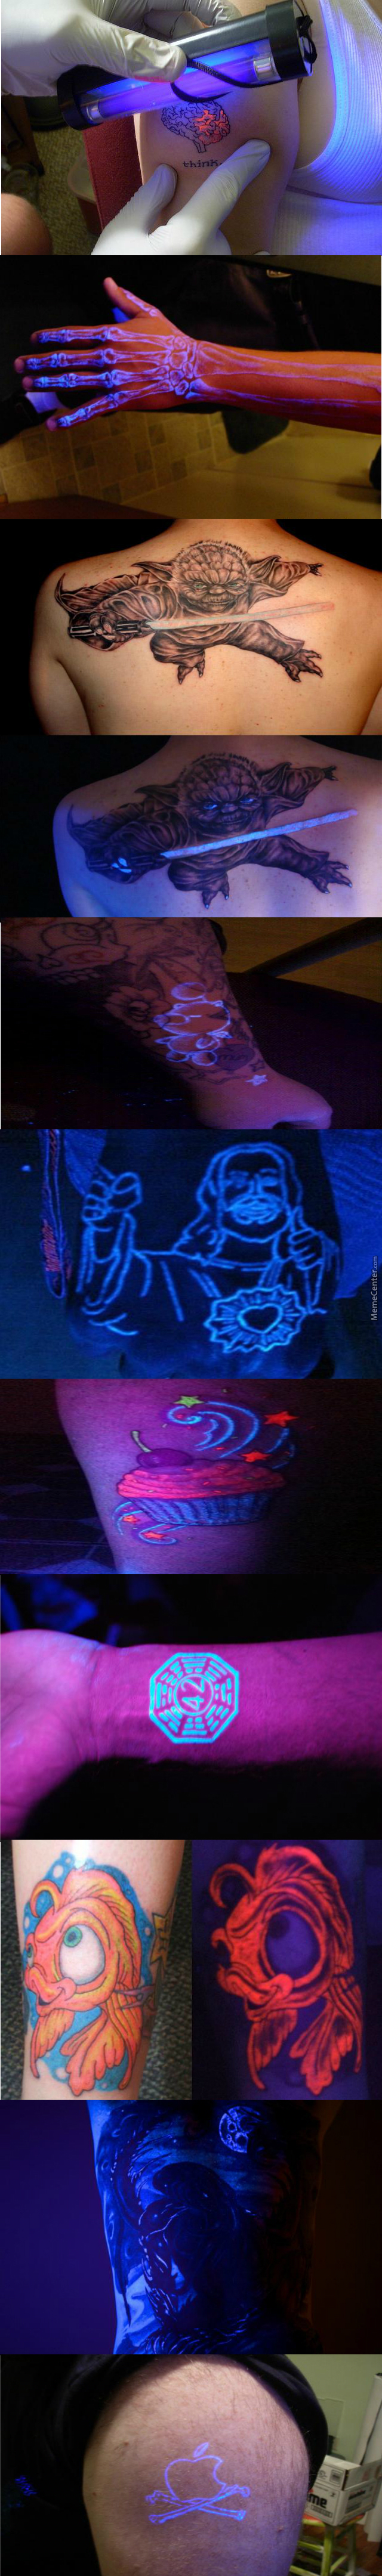 Some Awesome Uv Light Tattoos (Exept For The Last One)